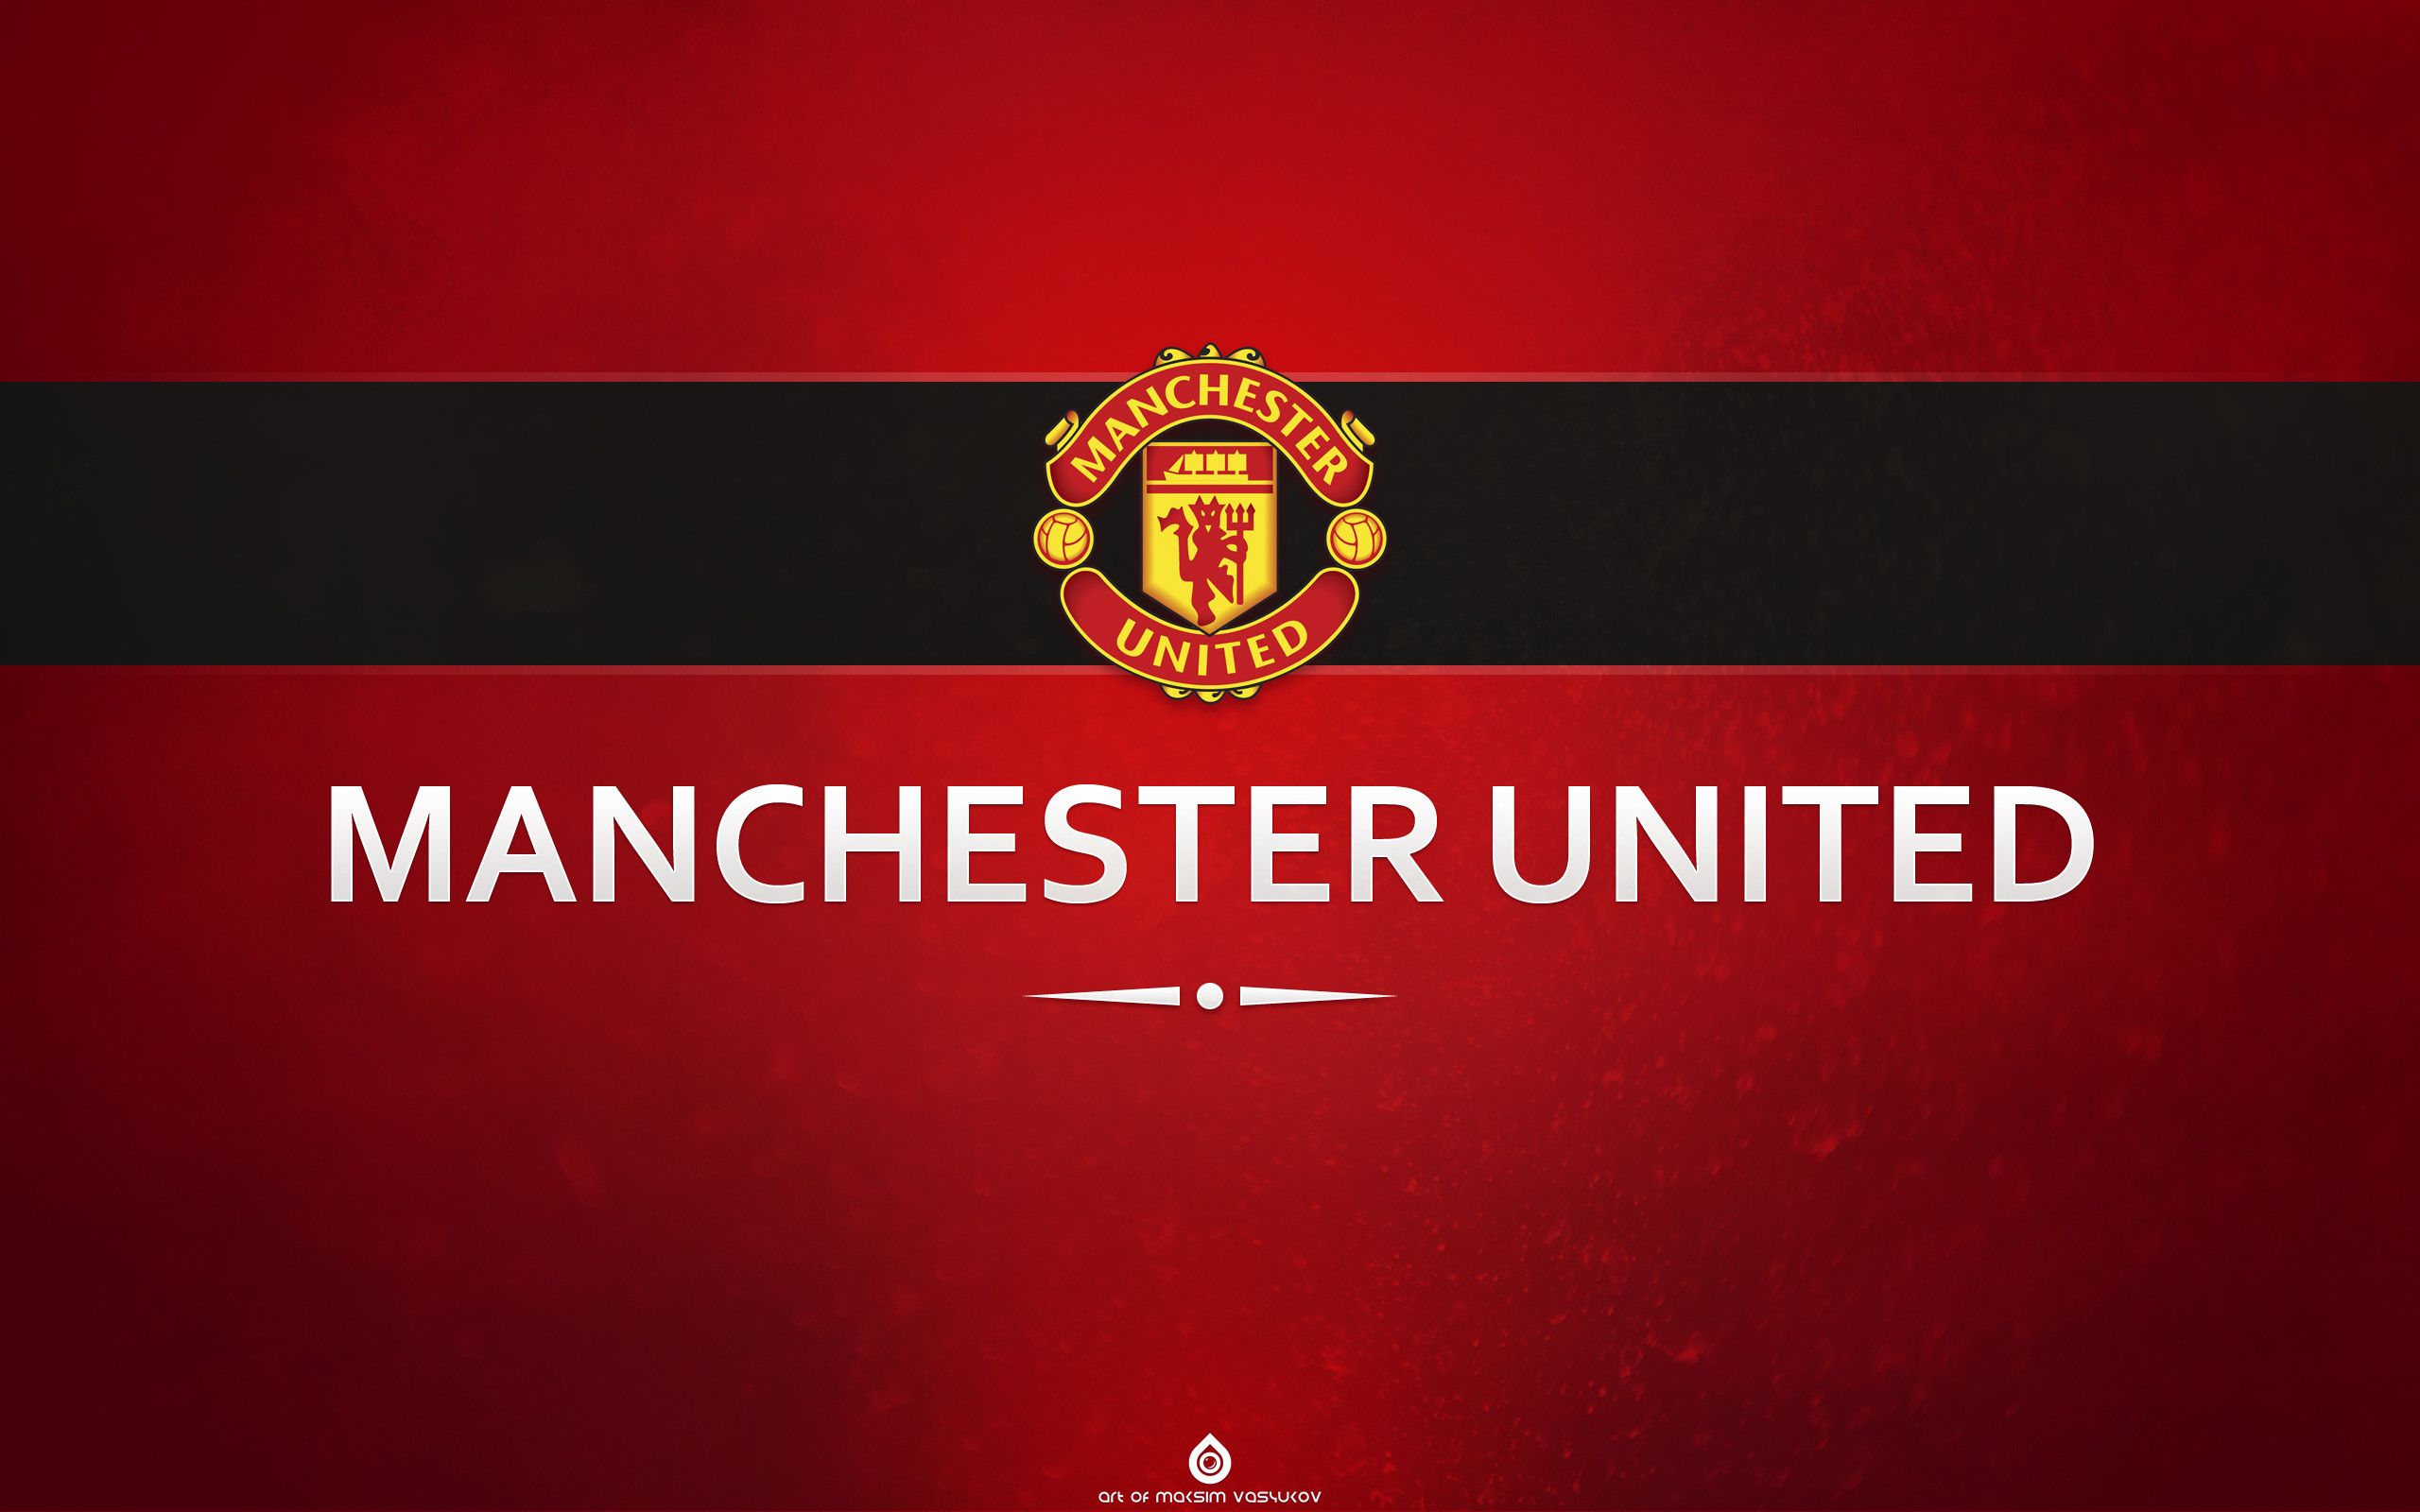 Manchester United Image Epic Wallpaperz 2560x1600